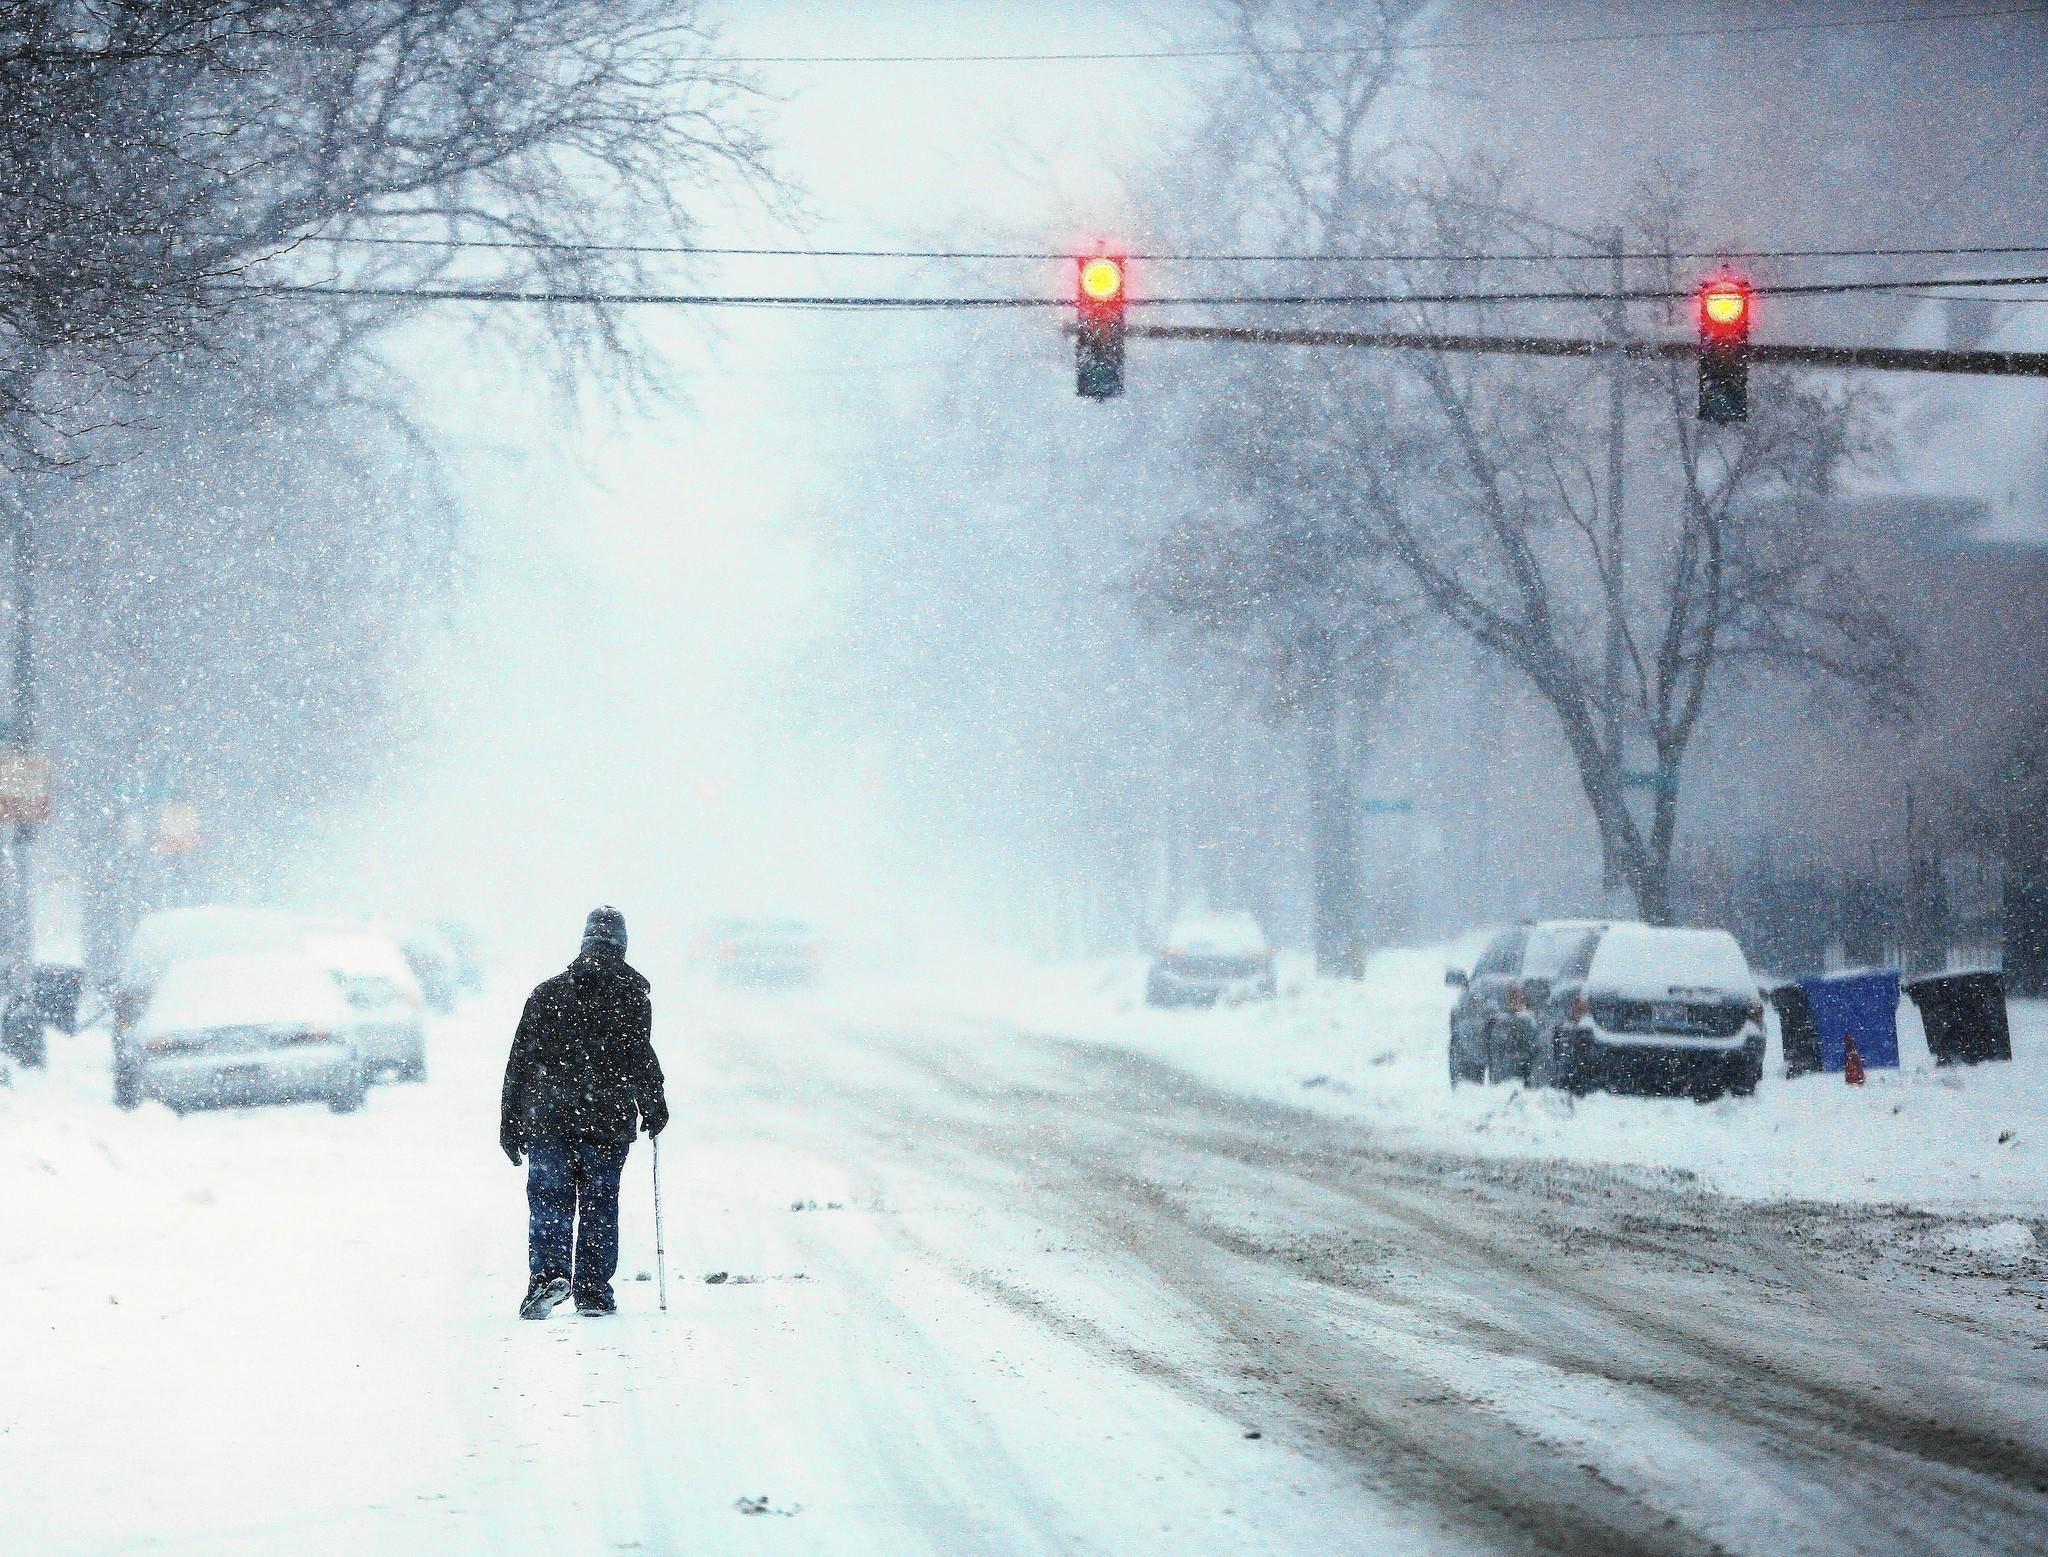 Chicago's winter of 2013-14 has been a blast. Or more accurately, one blast after another.